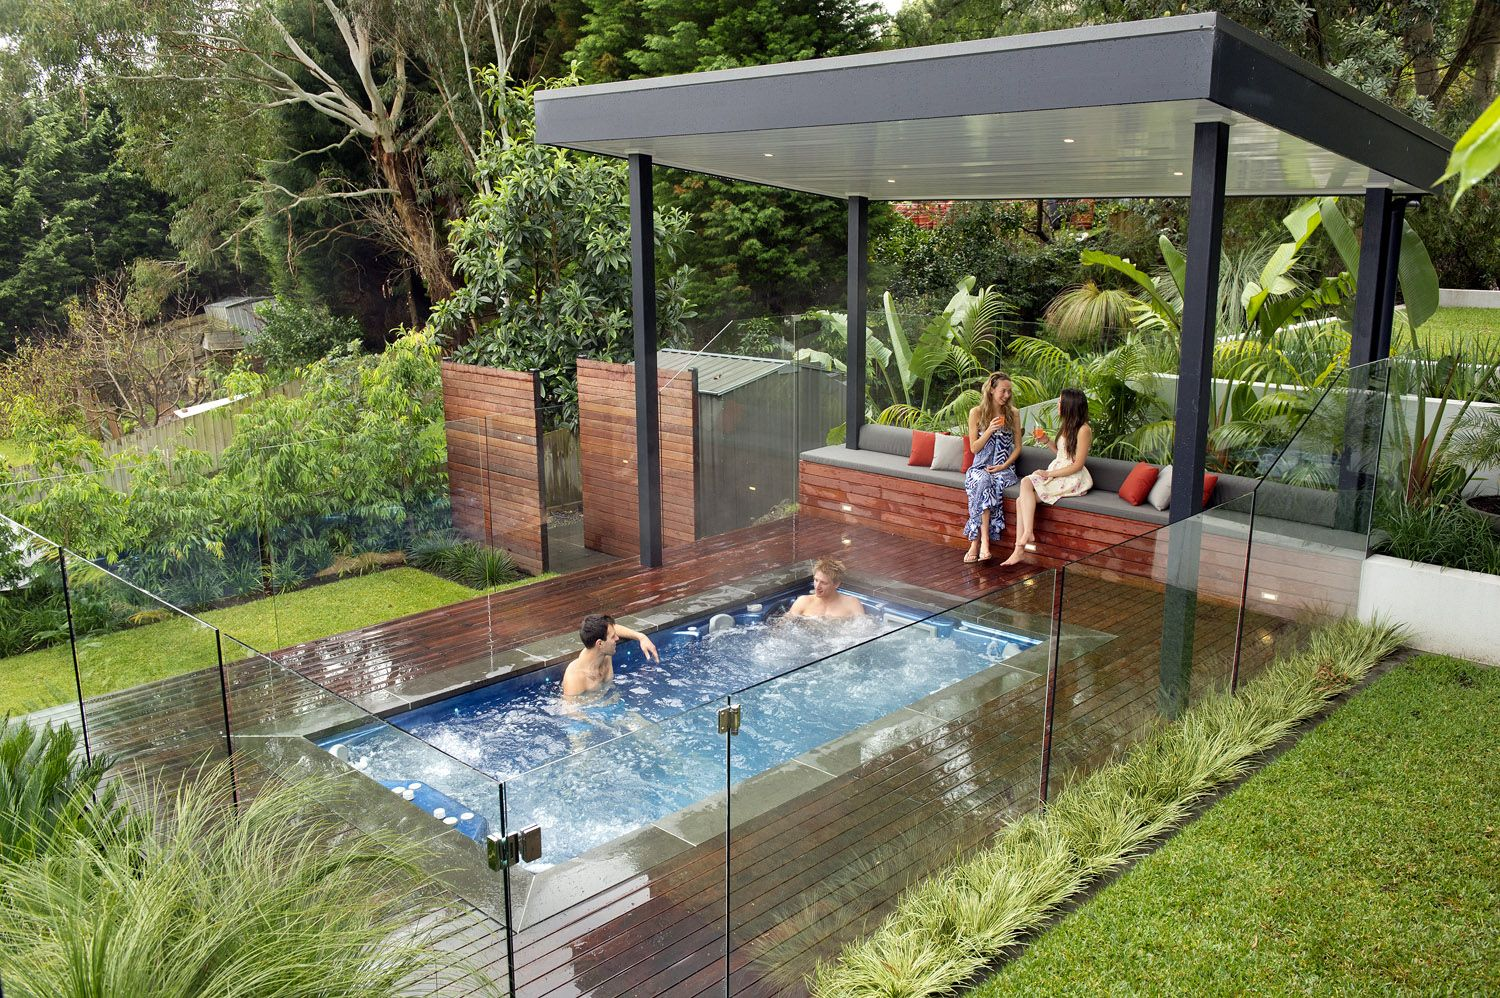 Modern nice design of the outdoor spa landscaping ideas for Pool design sloped yard